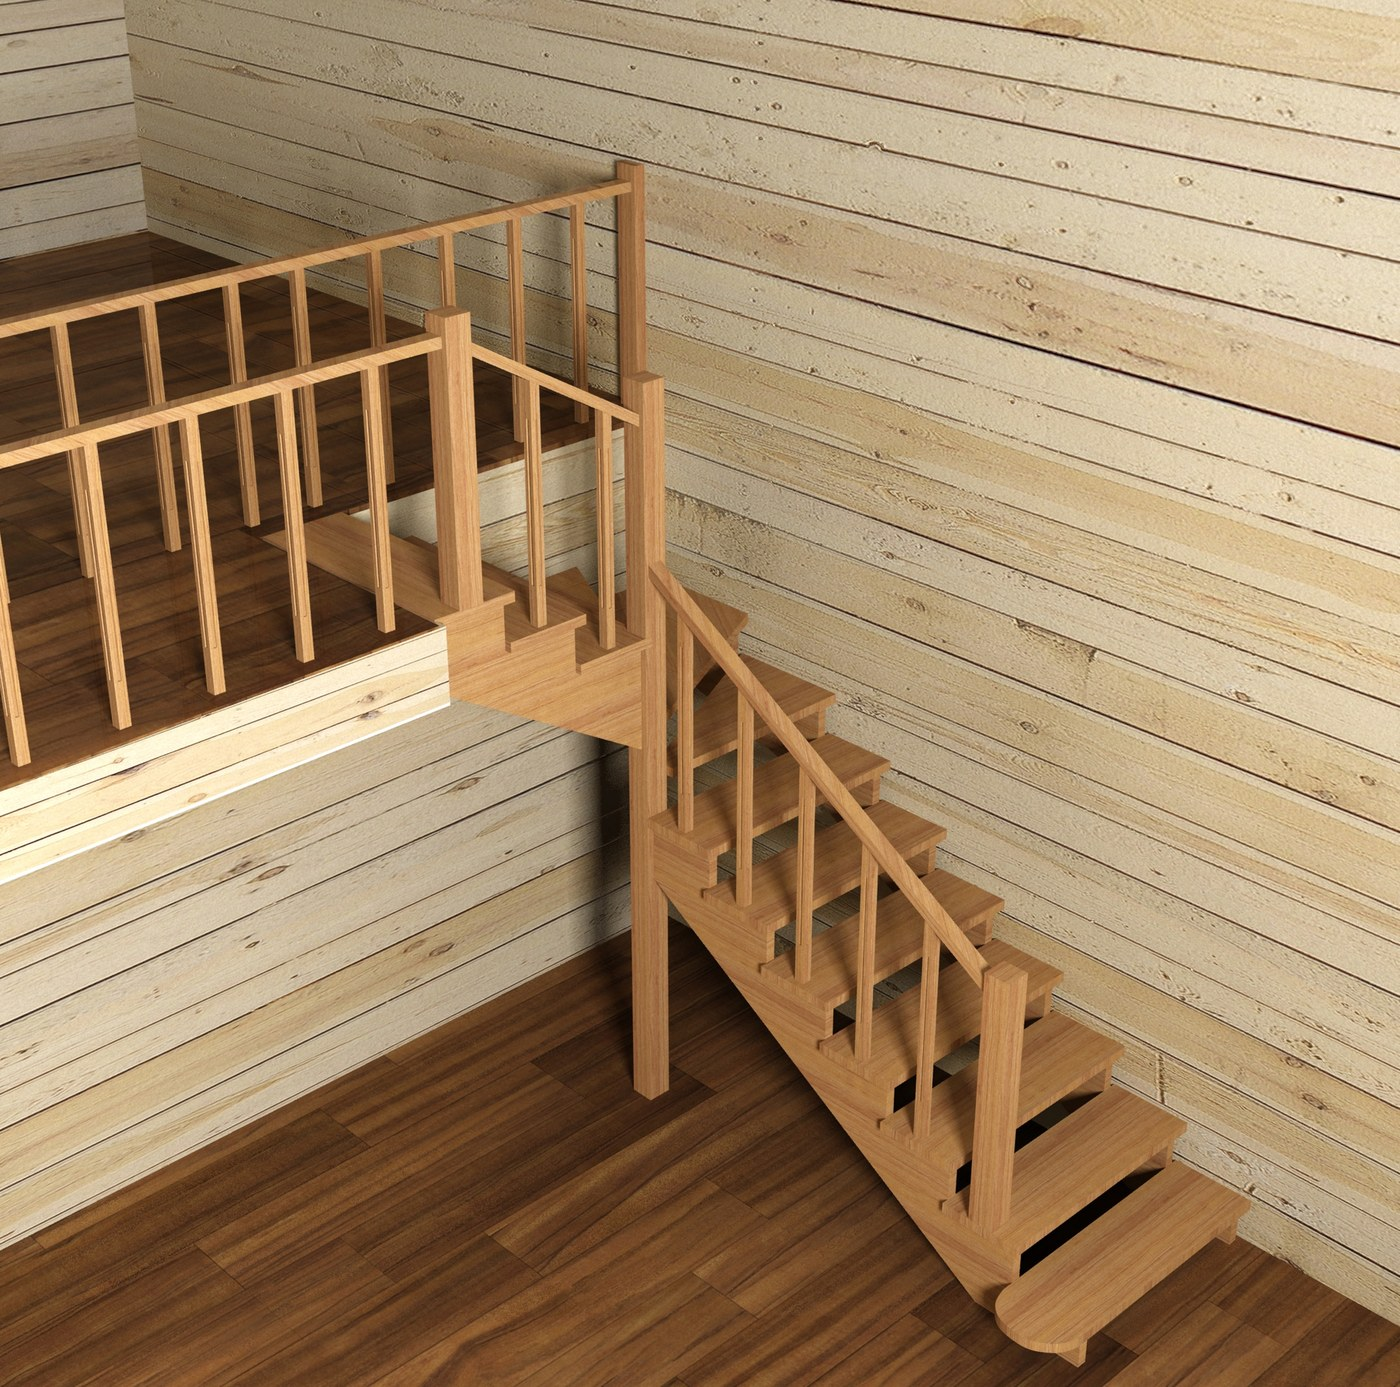 Stairs in glulam house